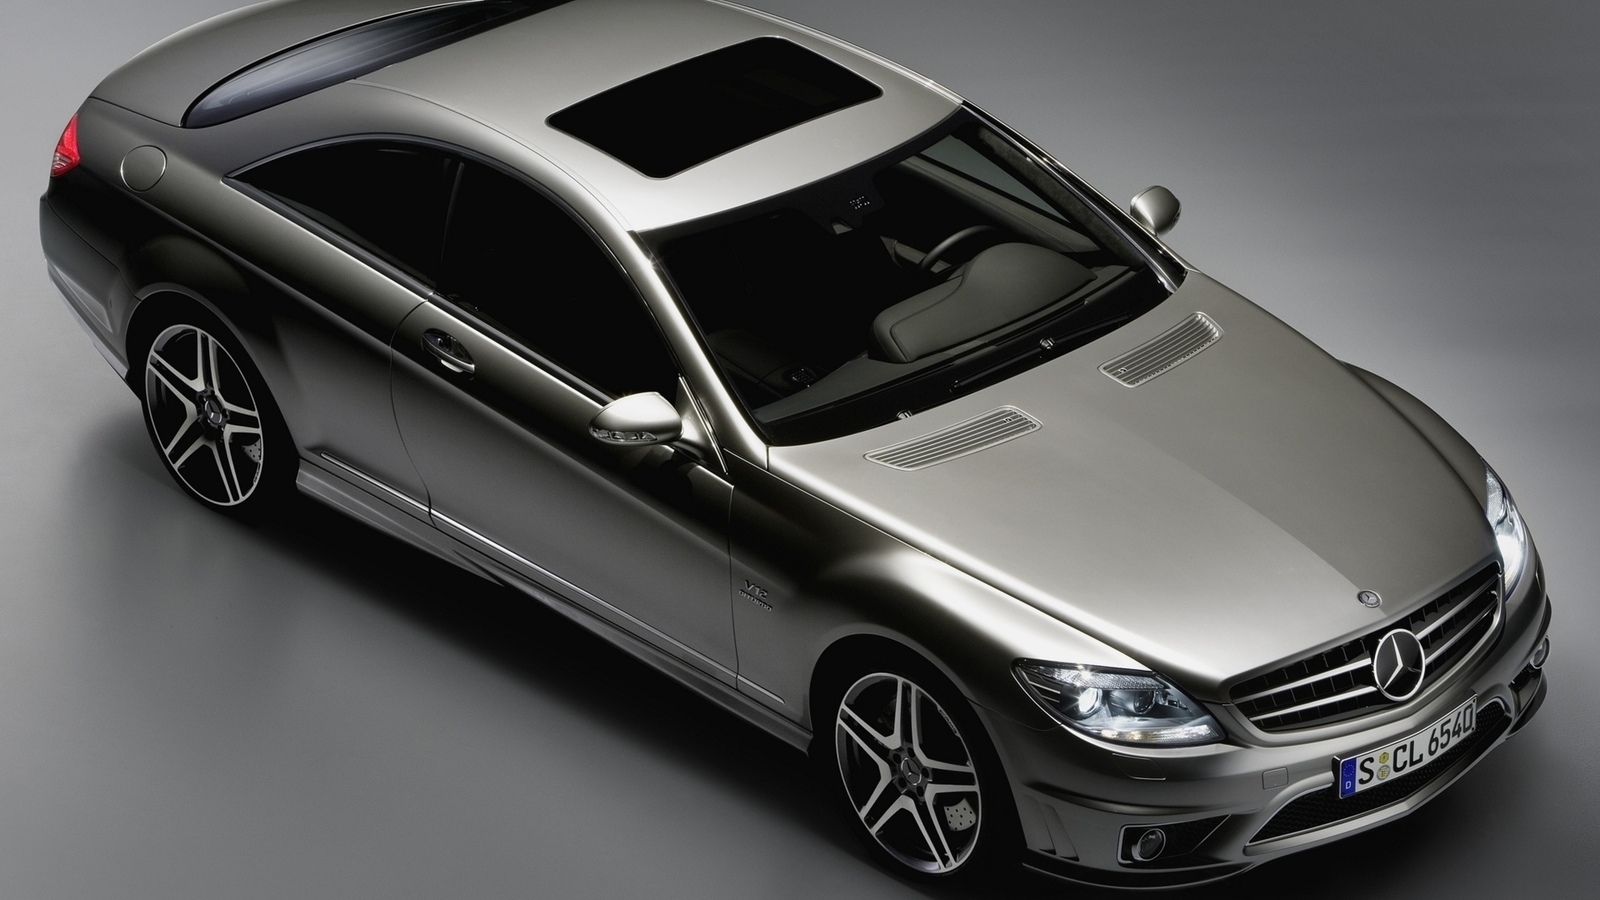 amg, mercedes-benz, edition, cl65, cl-klasse